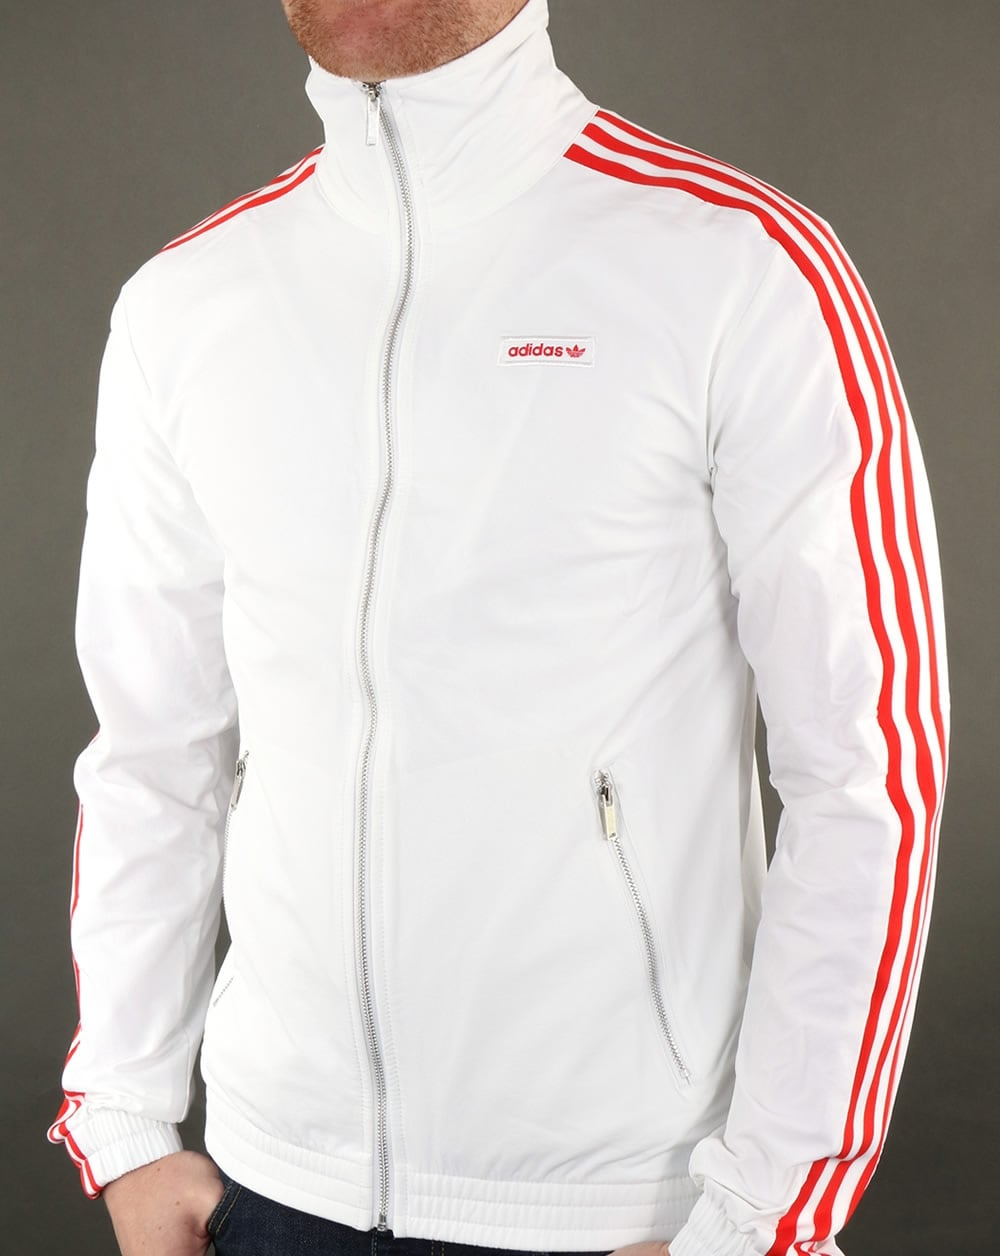 Adidas Originals Mdn Track Top White Men S Jacket